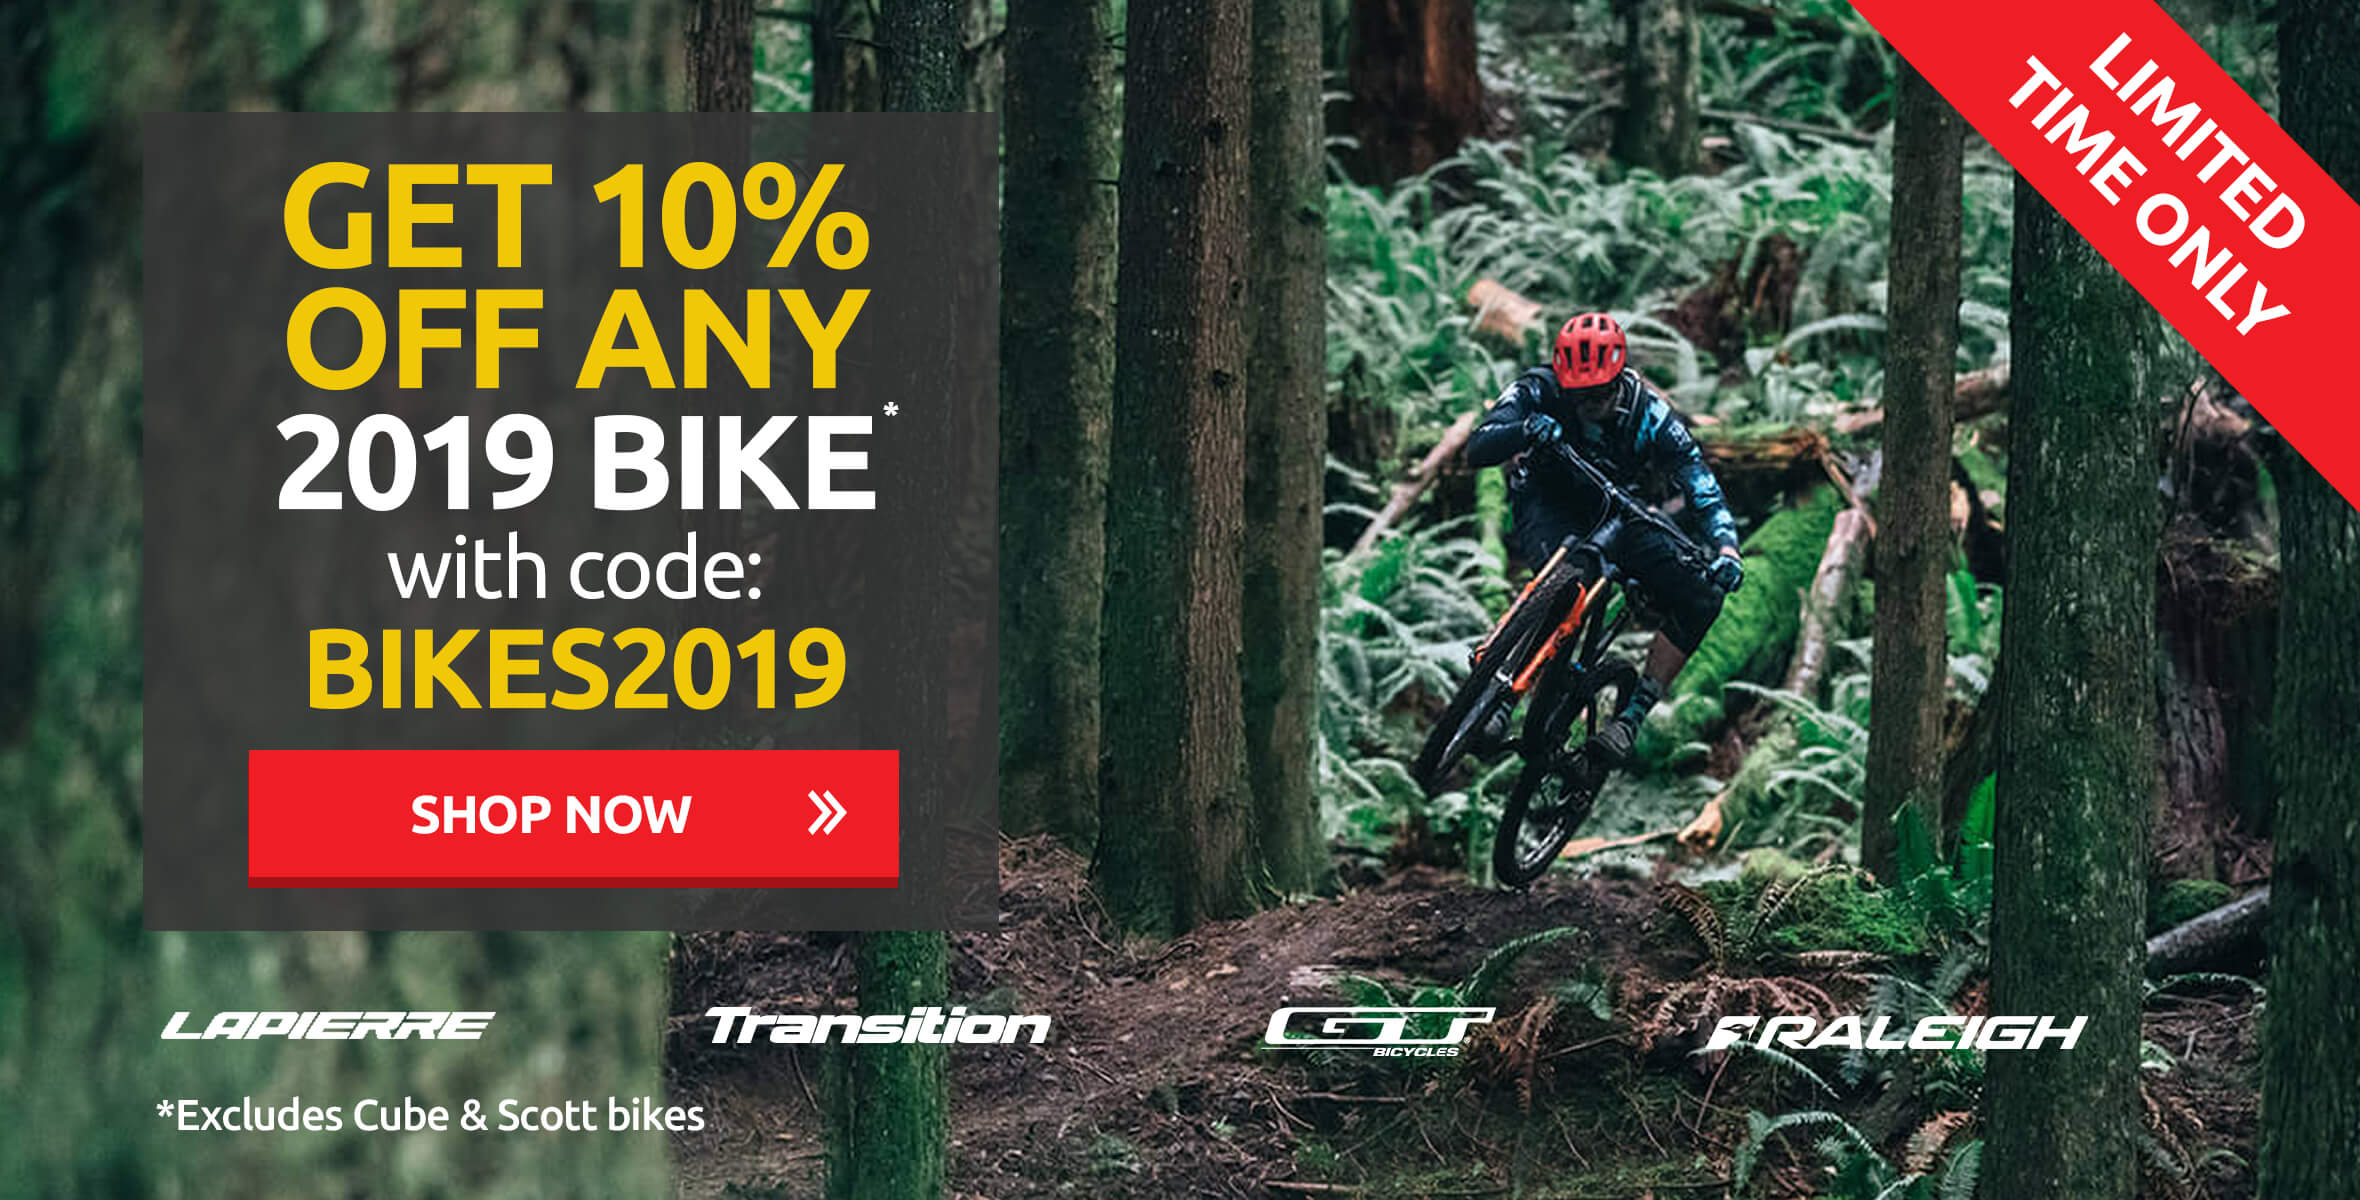 Save 10% with code - BIKES2019